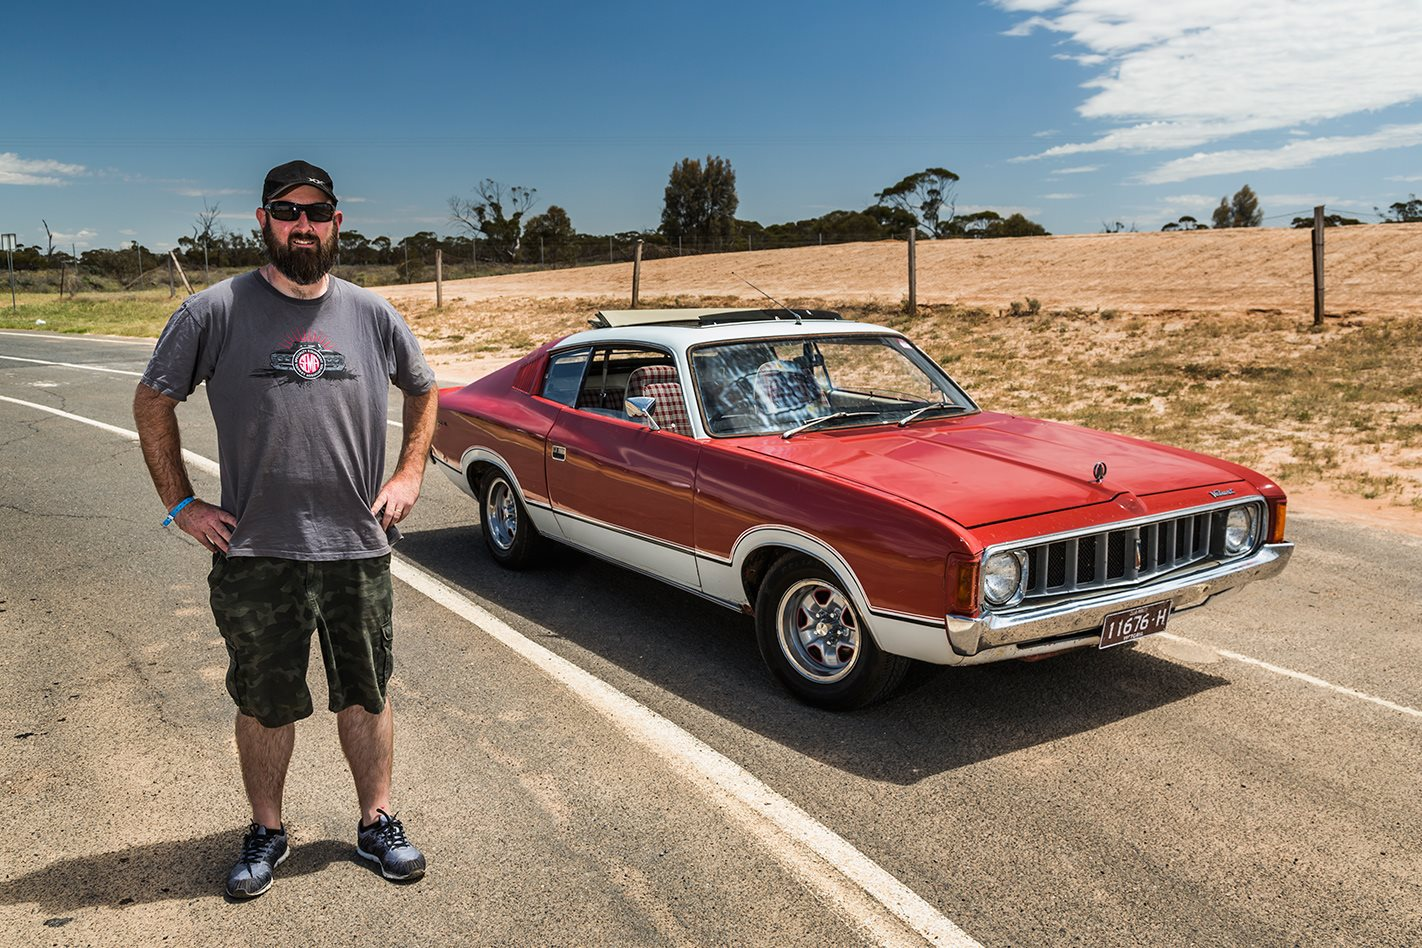 Chrysler VJ Valiant Charger Brad Keem